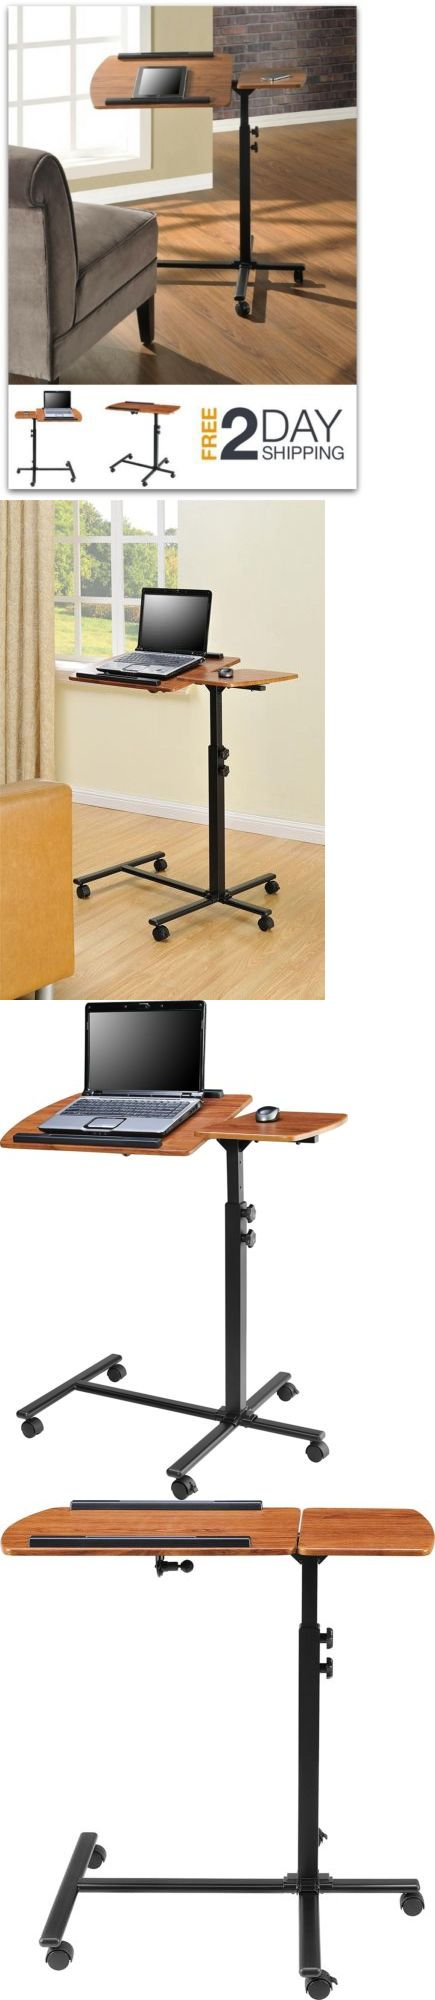 Bed and Chair Tables: Hospital Bedside Table Over Bed Computer Tray Laptop Rolling Swivel Wheel Cart -> BUY IT NOW ONLY: $55.84 on eBay!